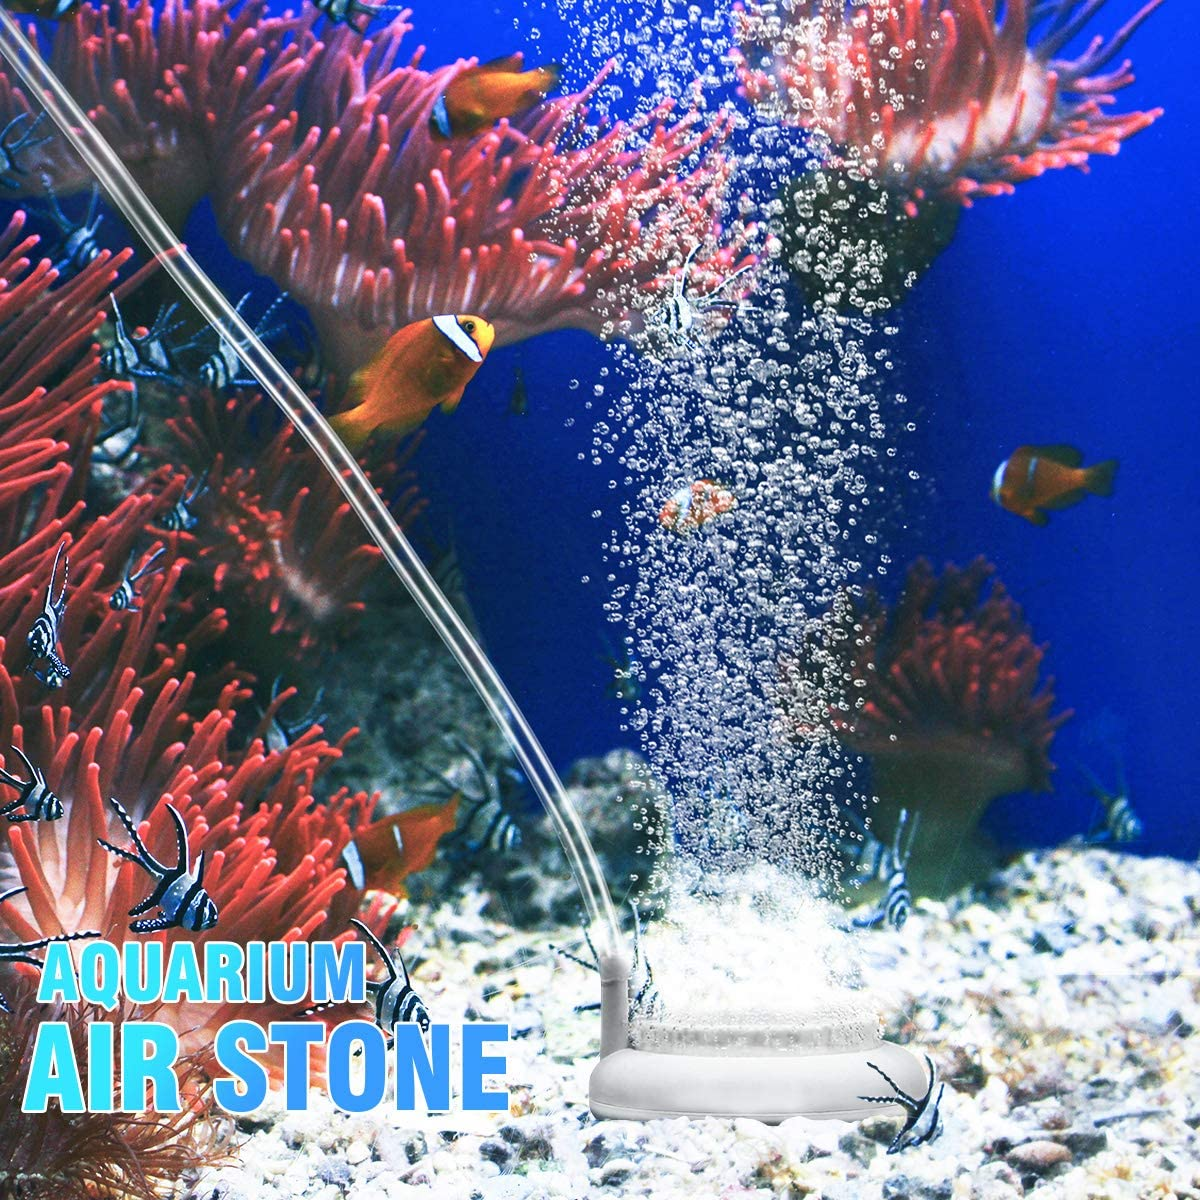 2 Inch POPETPOP Air Stone Bubble for Aquarium Fish Tank Round Oxygen Bubbler Diffuser with Suction Cup